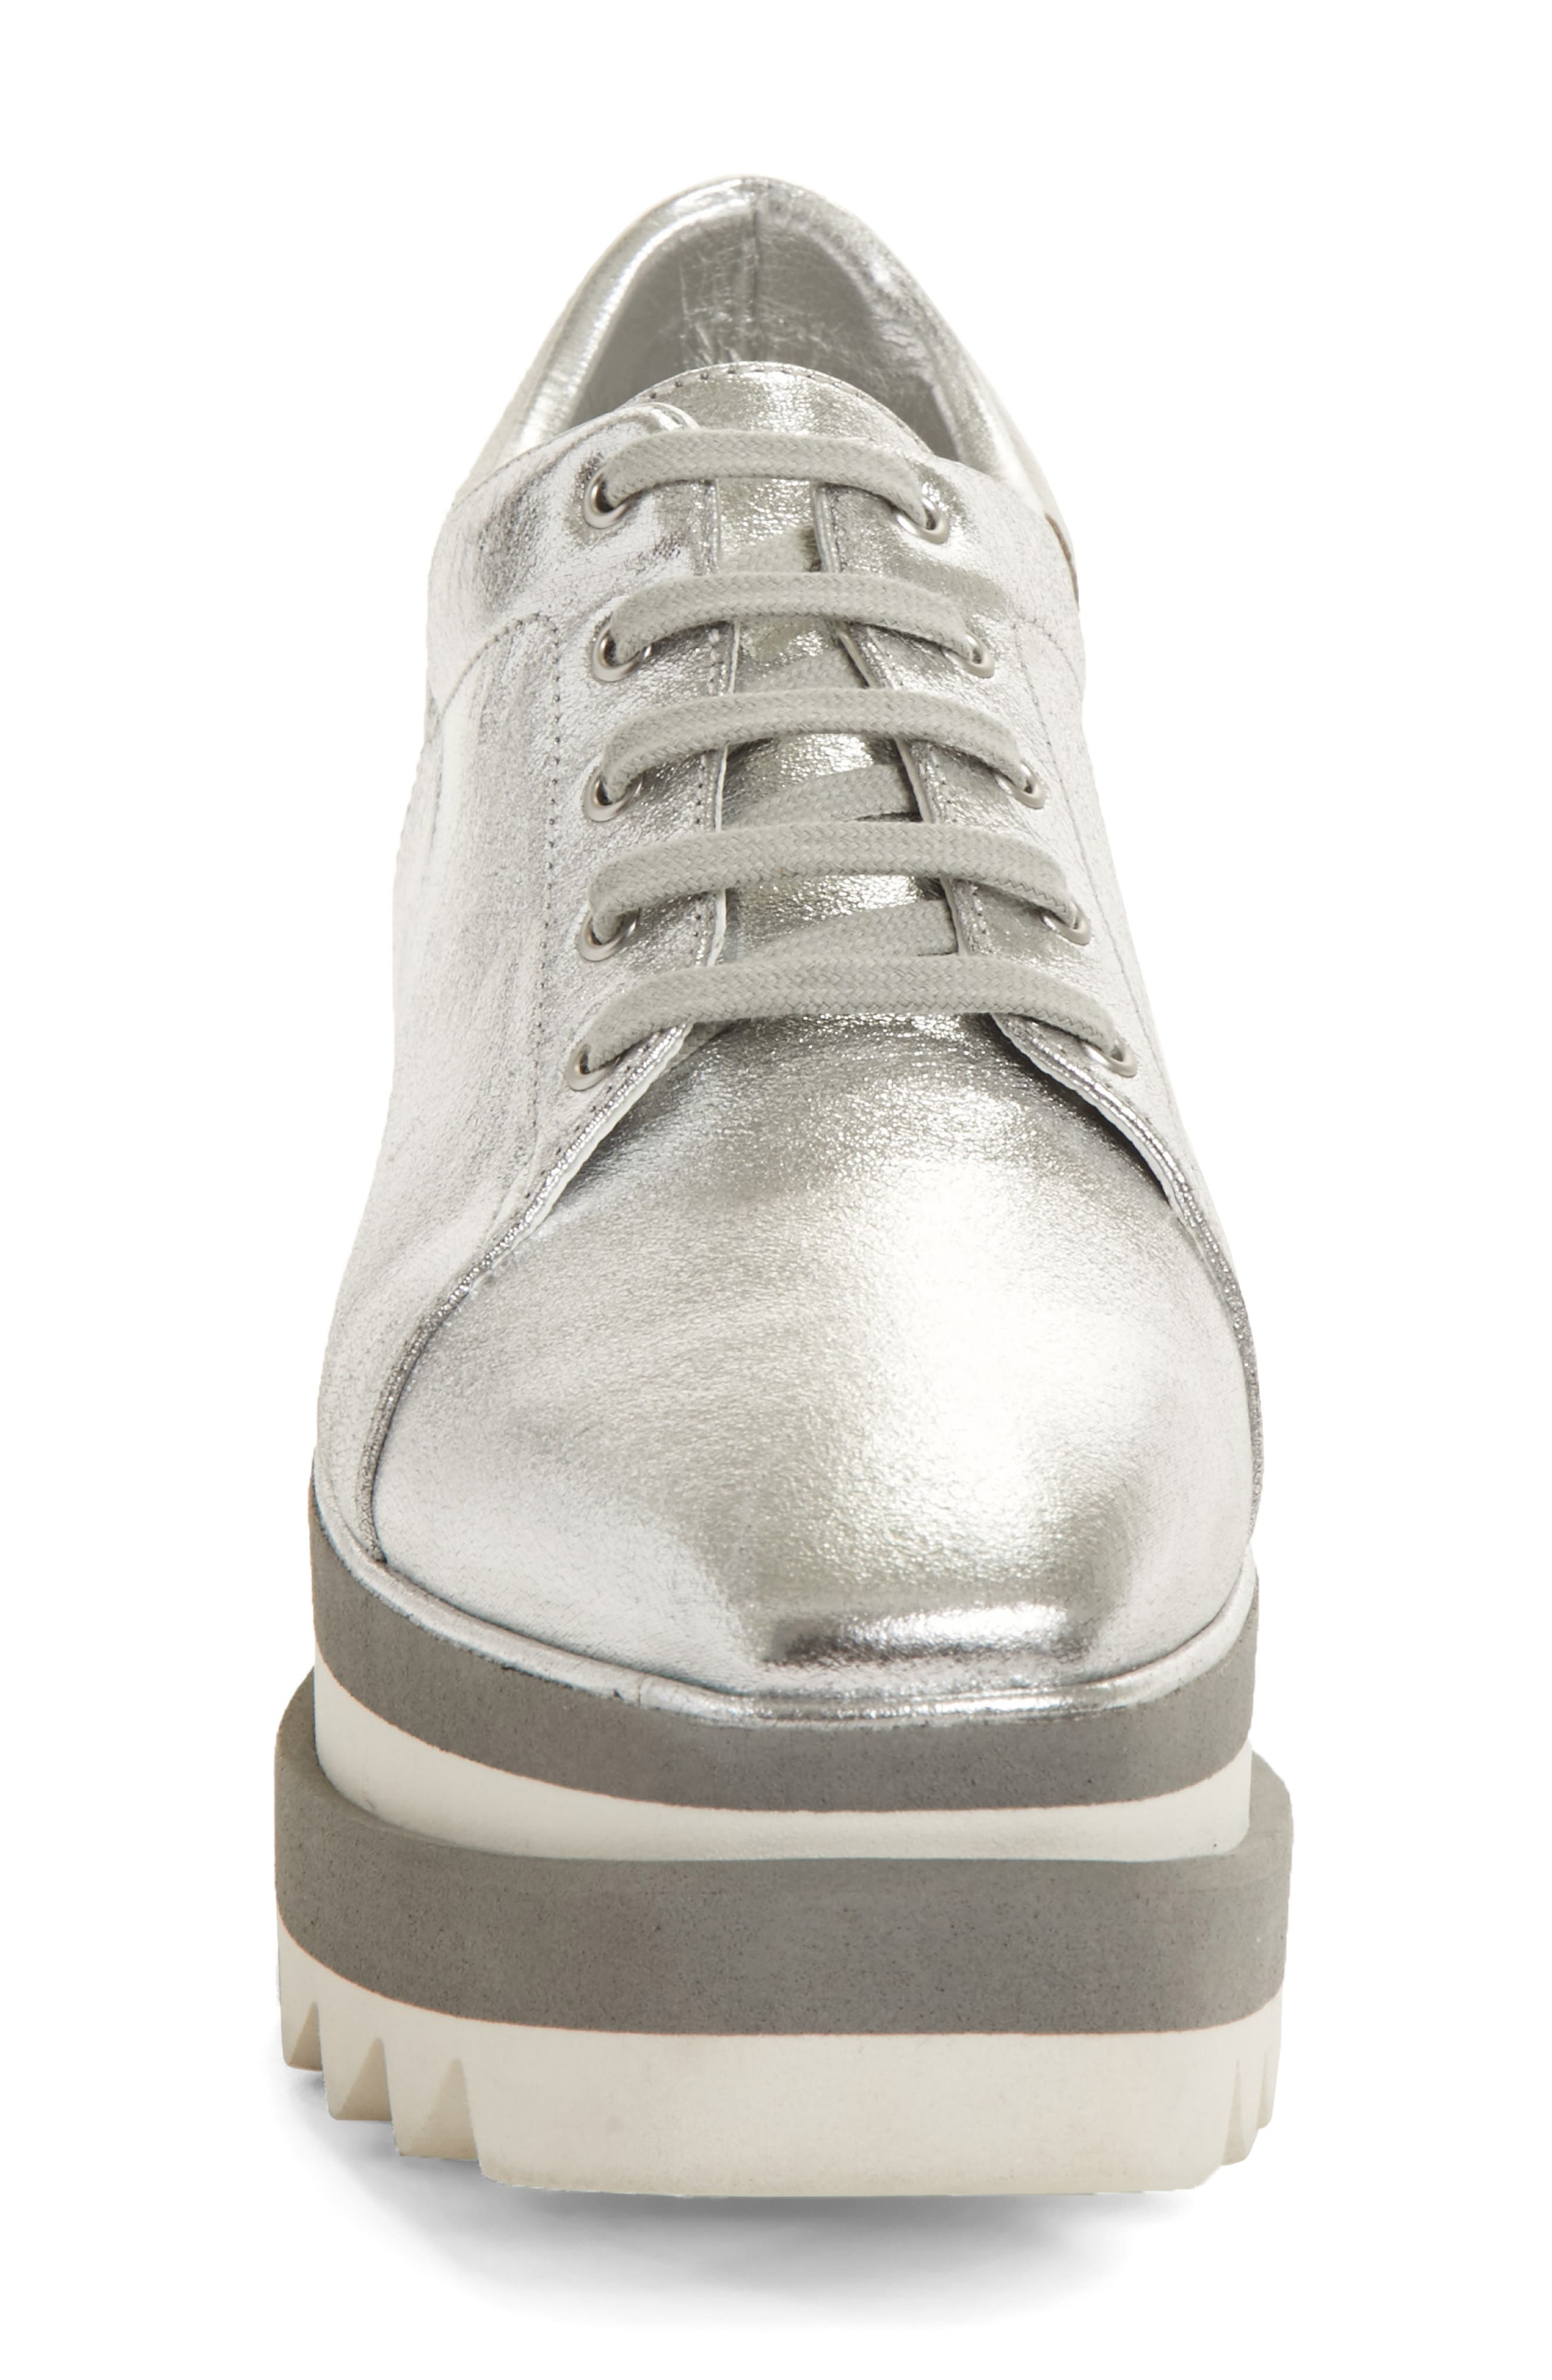 Elyse Platform Sneaker,                             Alternate thumbnail 4, color,                             SILVER